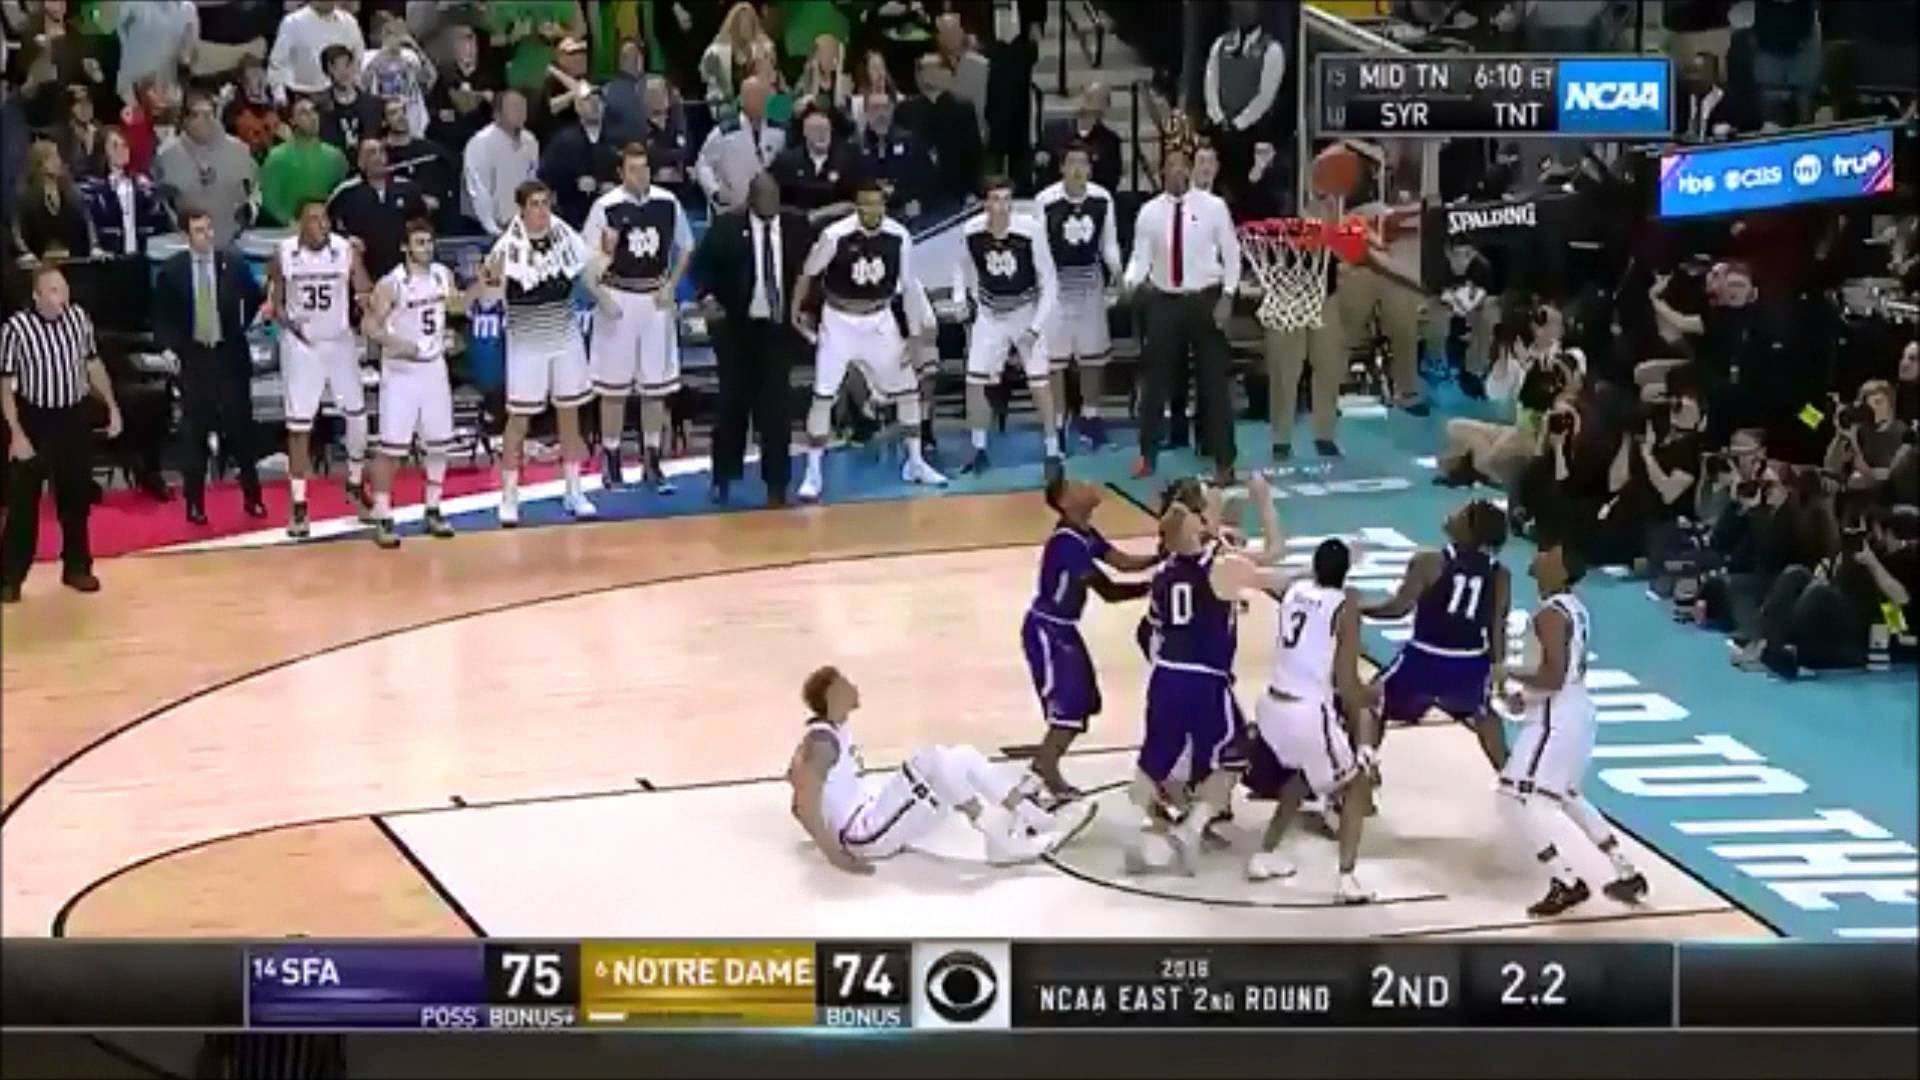 Notre Dame beats Stephen F. Austin on last second tip in